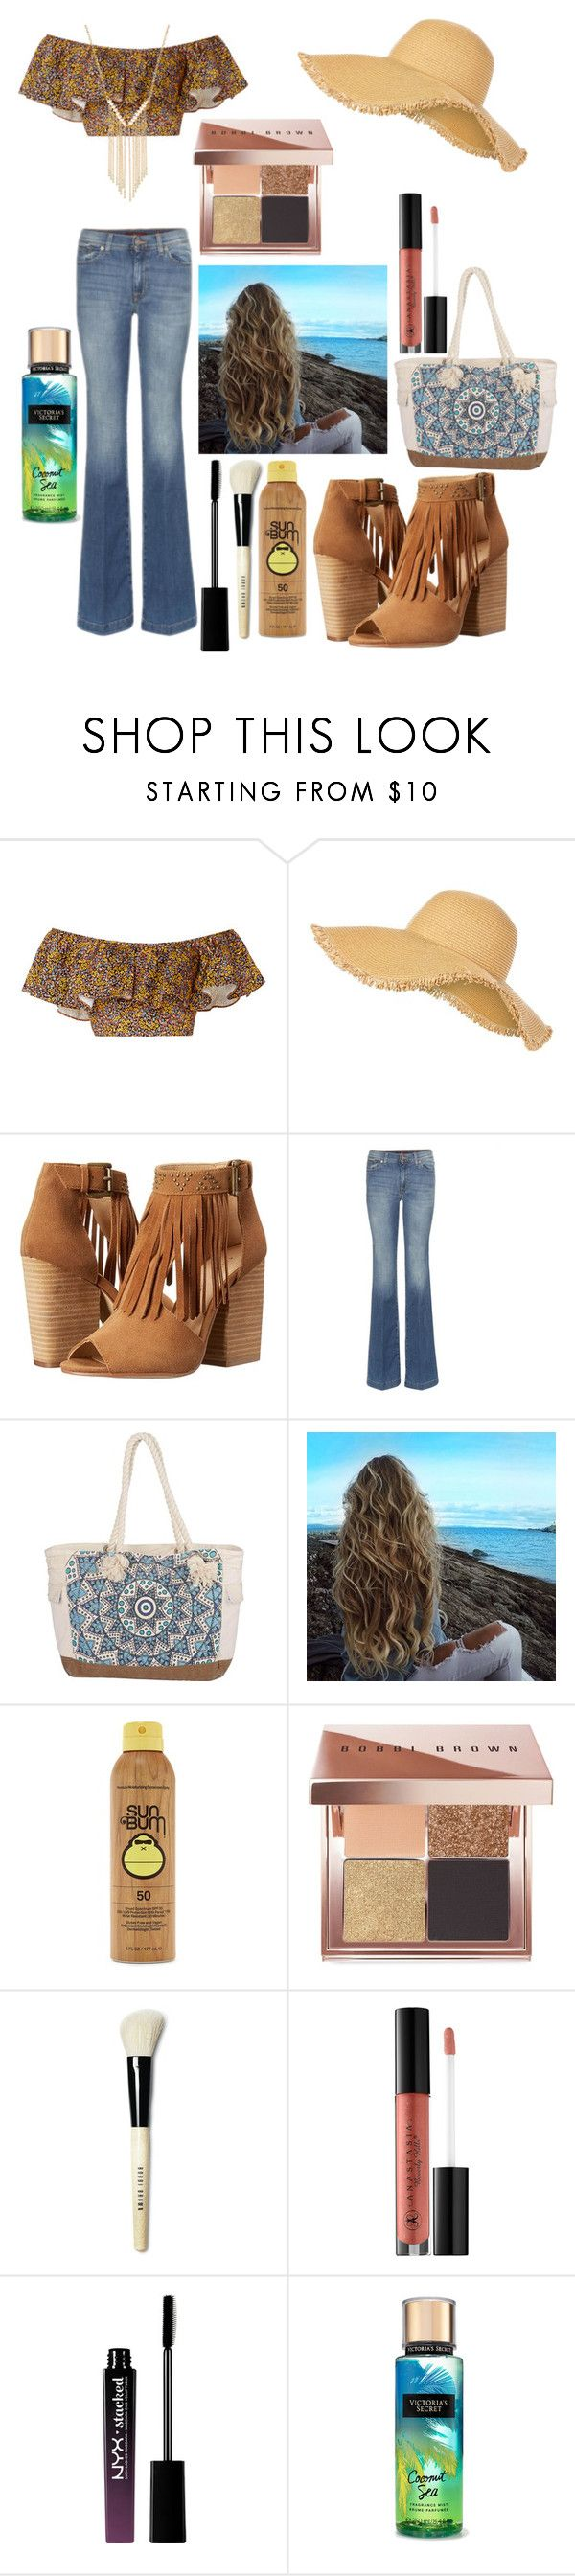 """""""Spain"""" by cambam435 on Polyvore featuring Philosophy di Lorenzo Serafini, New Look, Chinese Laundry, Billabong, Forever 21, Bobbi Brown Cosmetics, Anastasia Beverly Hills, NYX and Gemelli"""